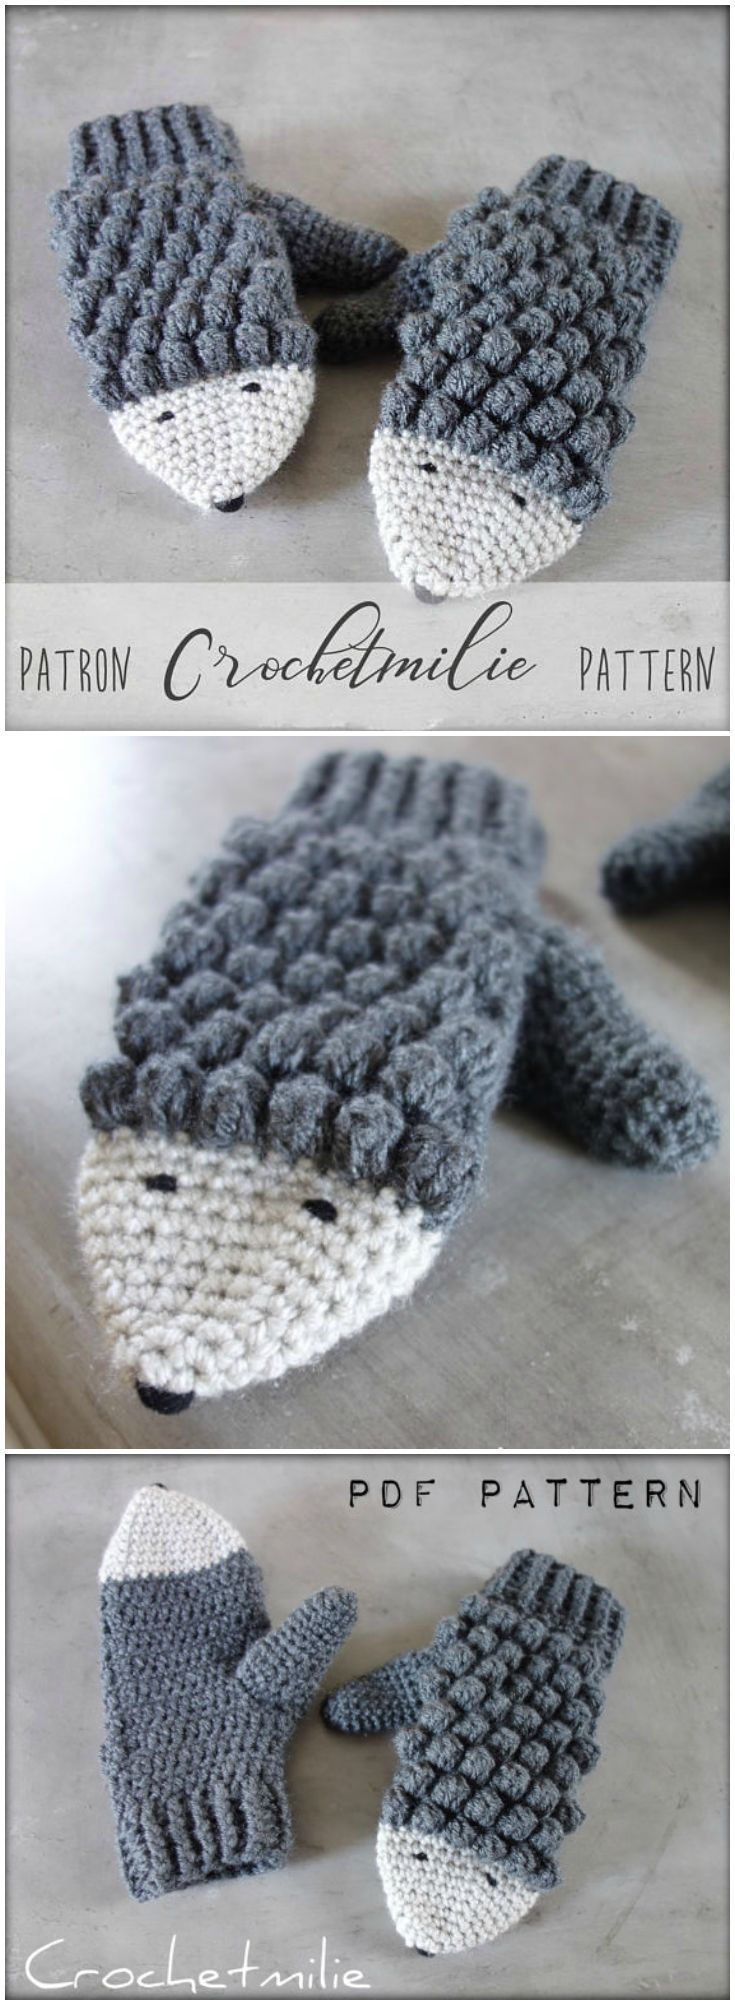 Hedgehog Mittens! Adorable crochet pattern for these fun puff-stitch, cozy winter mittens! Looks like a warm and simple pattern to crochet! #etsy #ad